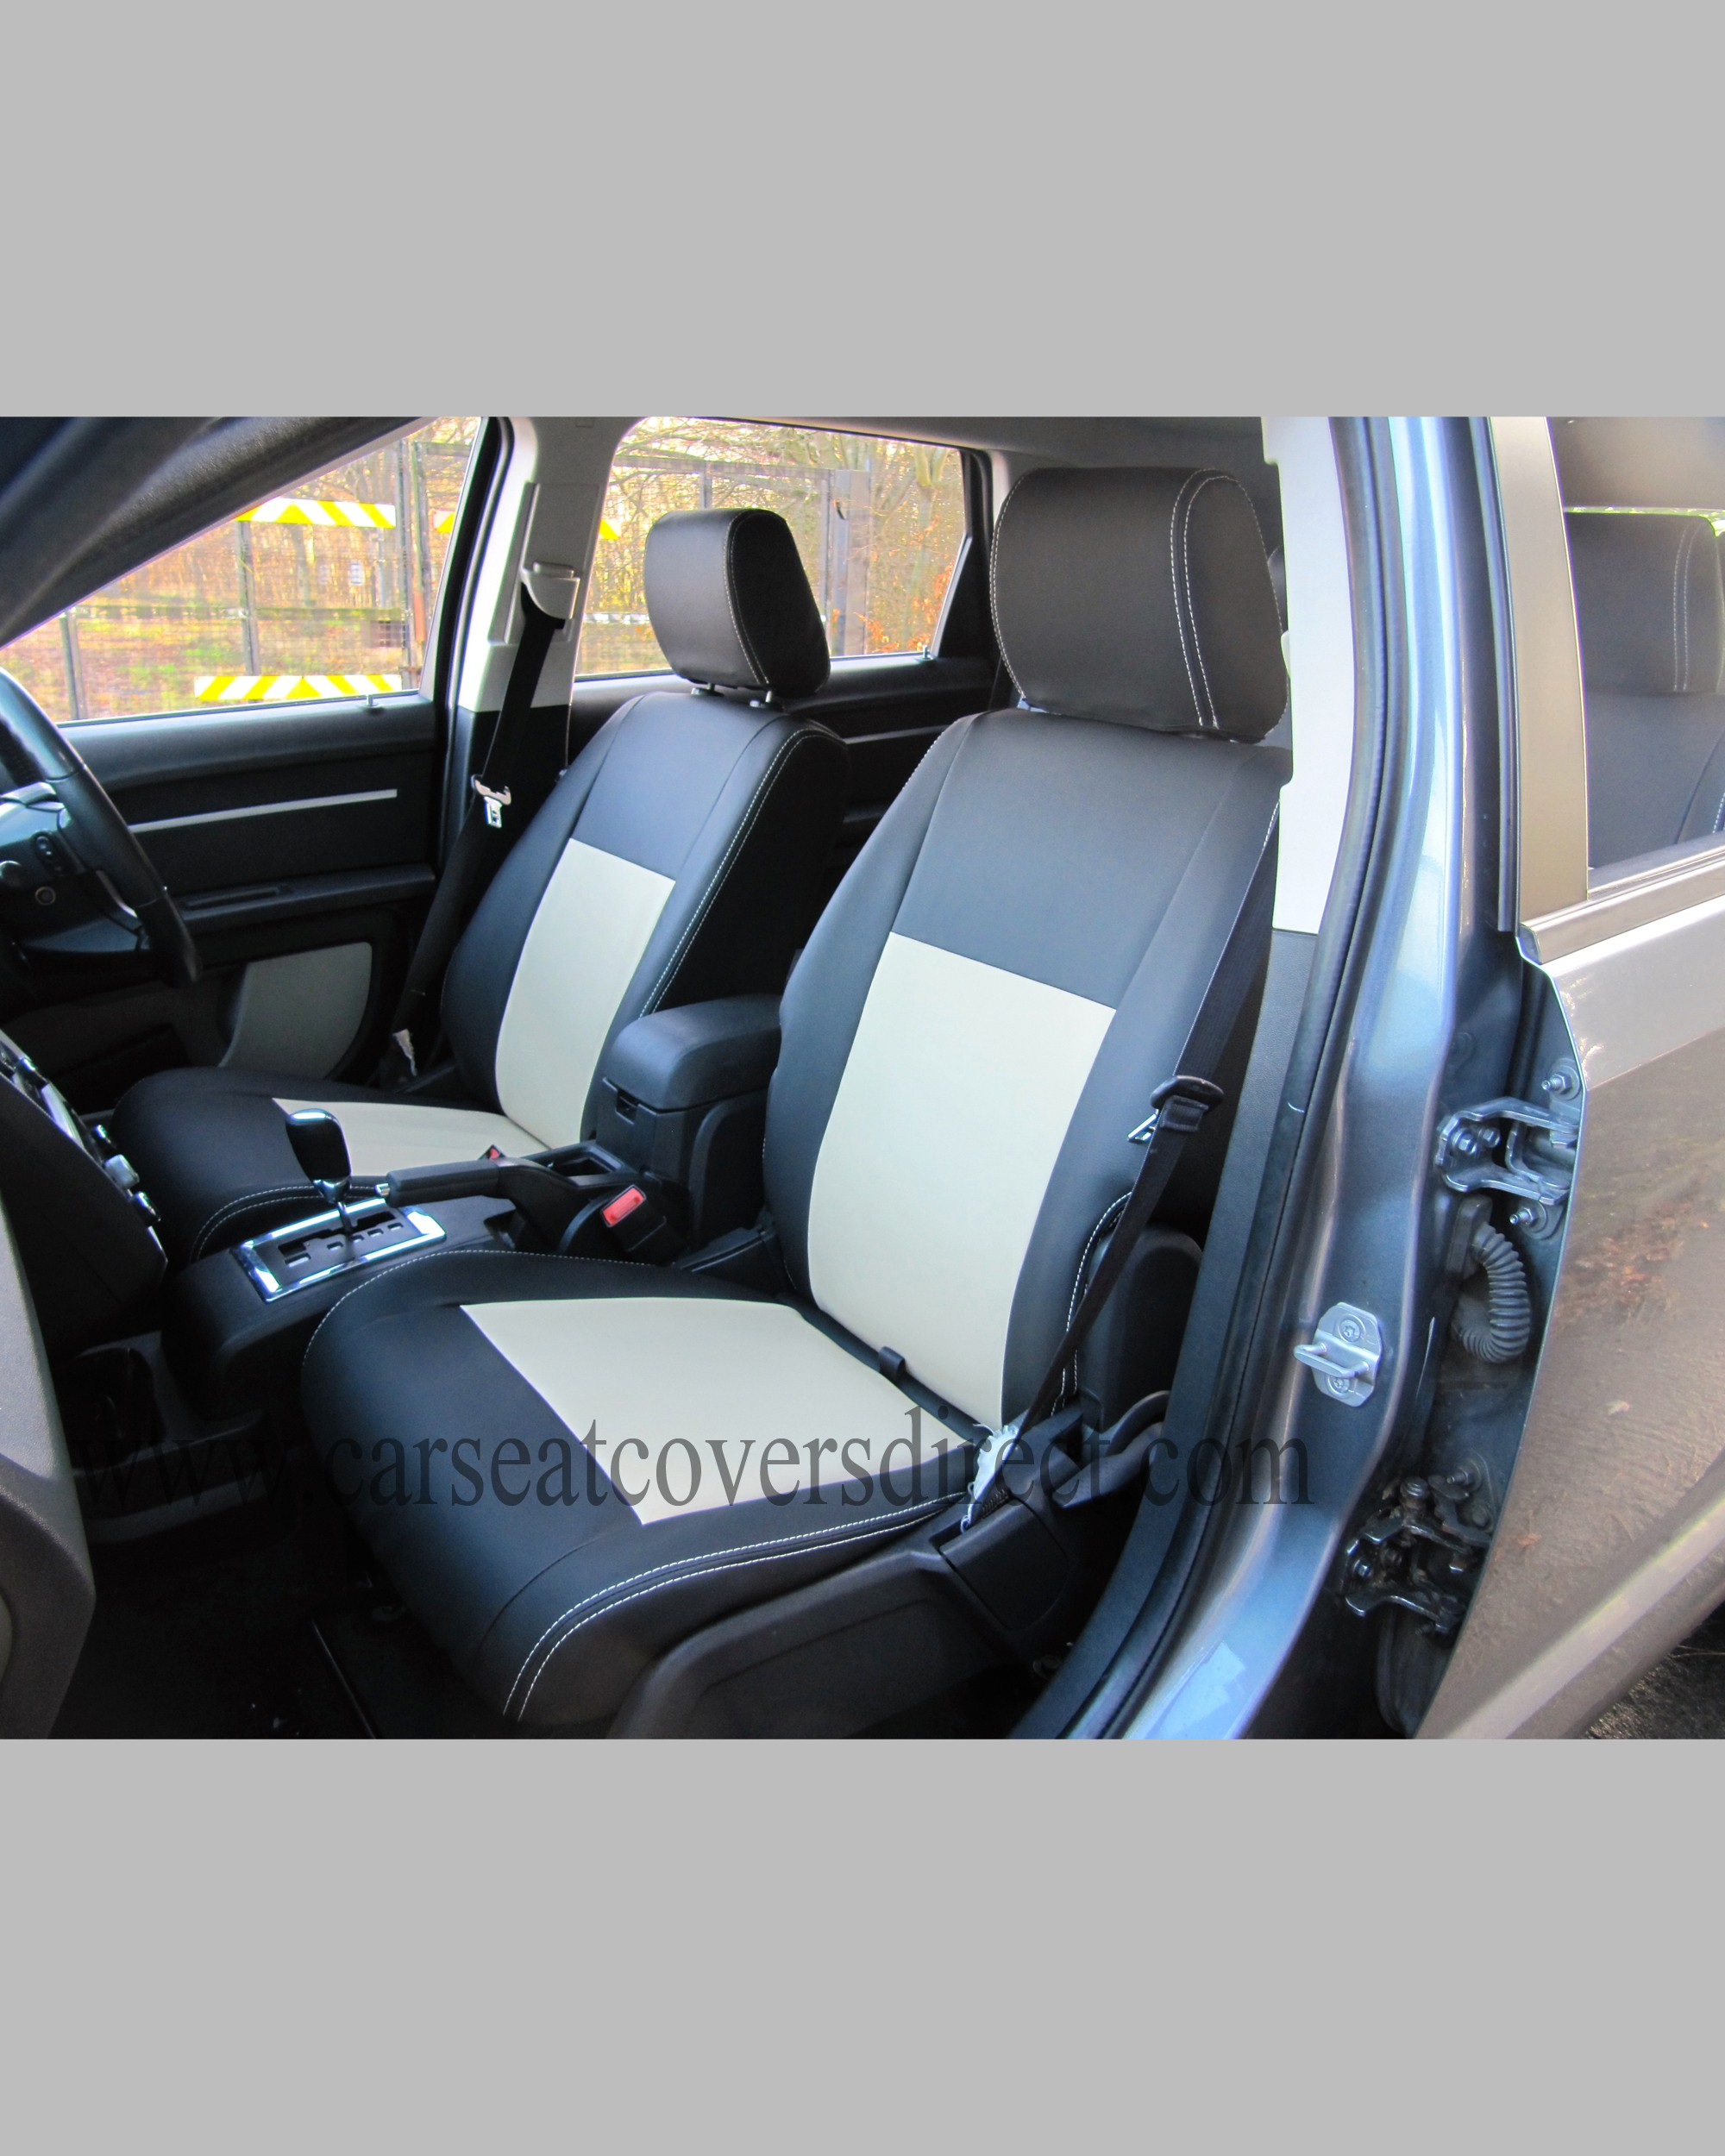 custom car seat cocers dodge journey charcoal leatherette sides beige centers and beige. Black Bedroom Furniture Sets. Home Design Ideas